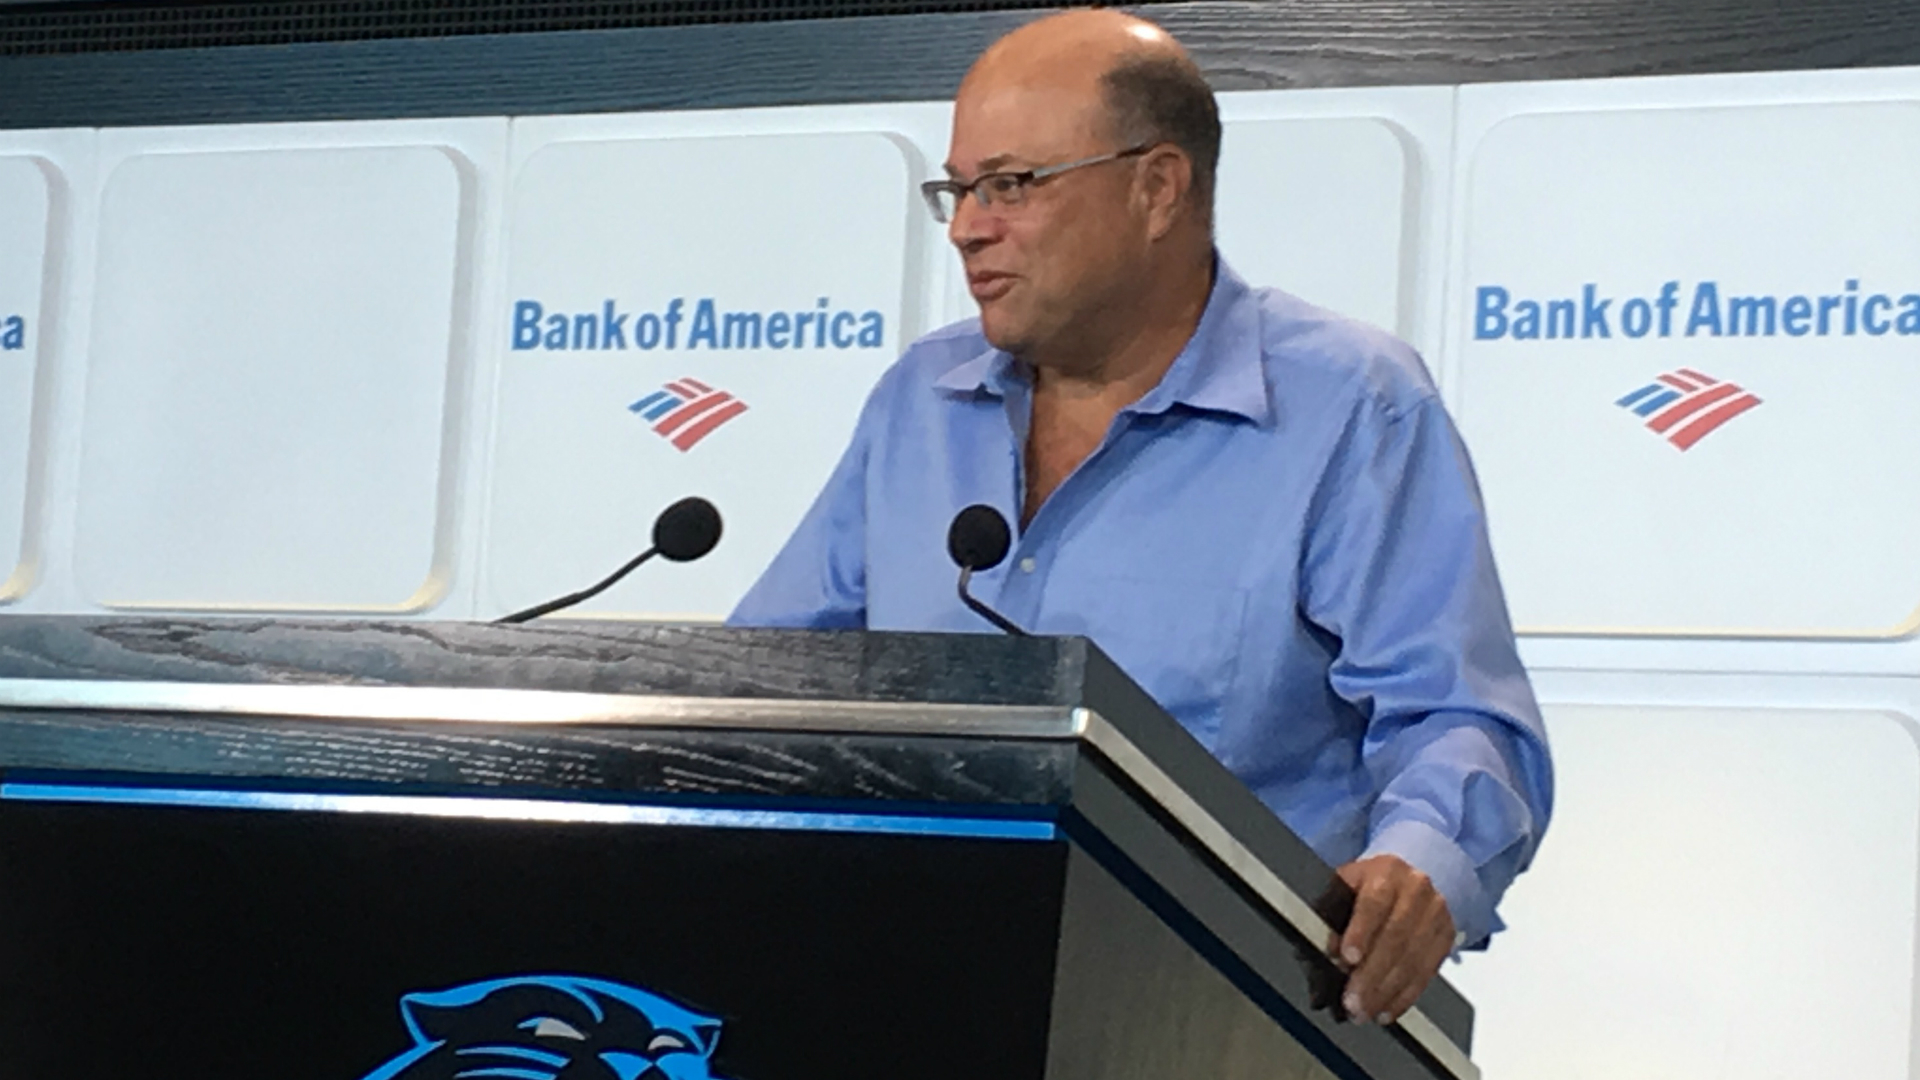 Panthers owner David Tepper talks plans for team, stadium development, more